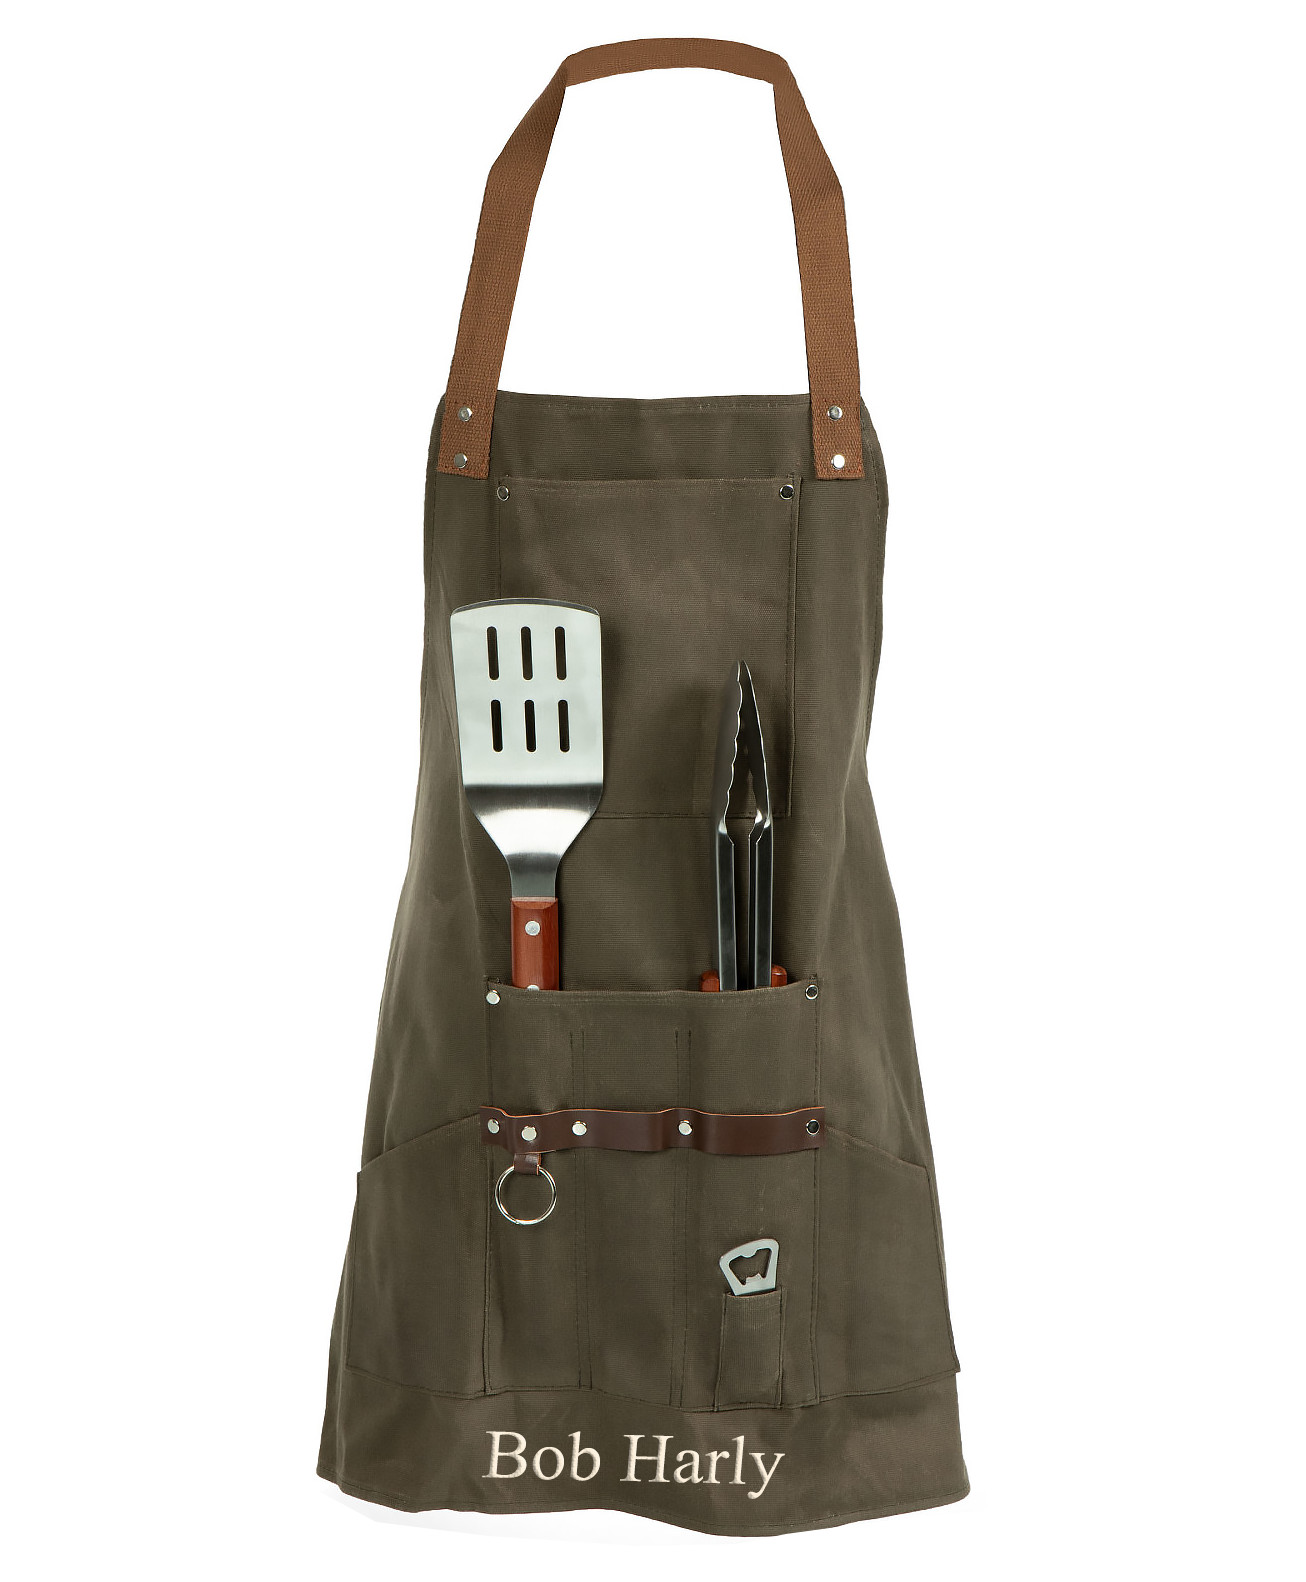 Smart BBQ Waxed Canvas Apron with Grilling Tool Set & Metal Retractable Bottle Opener